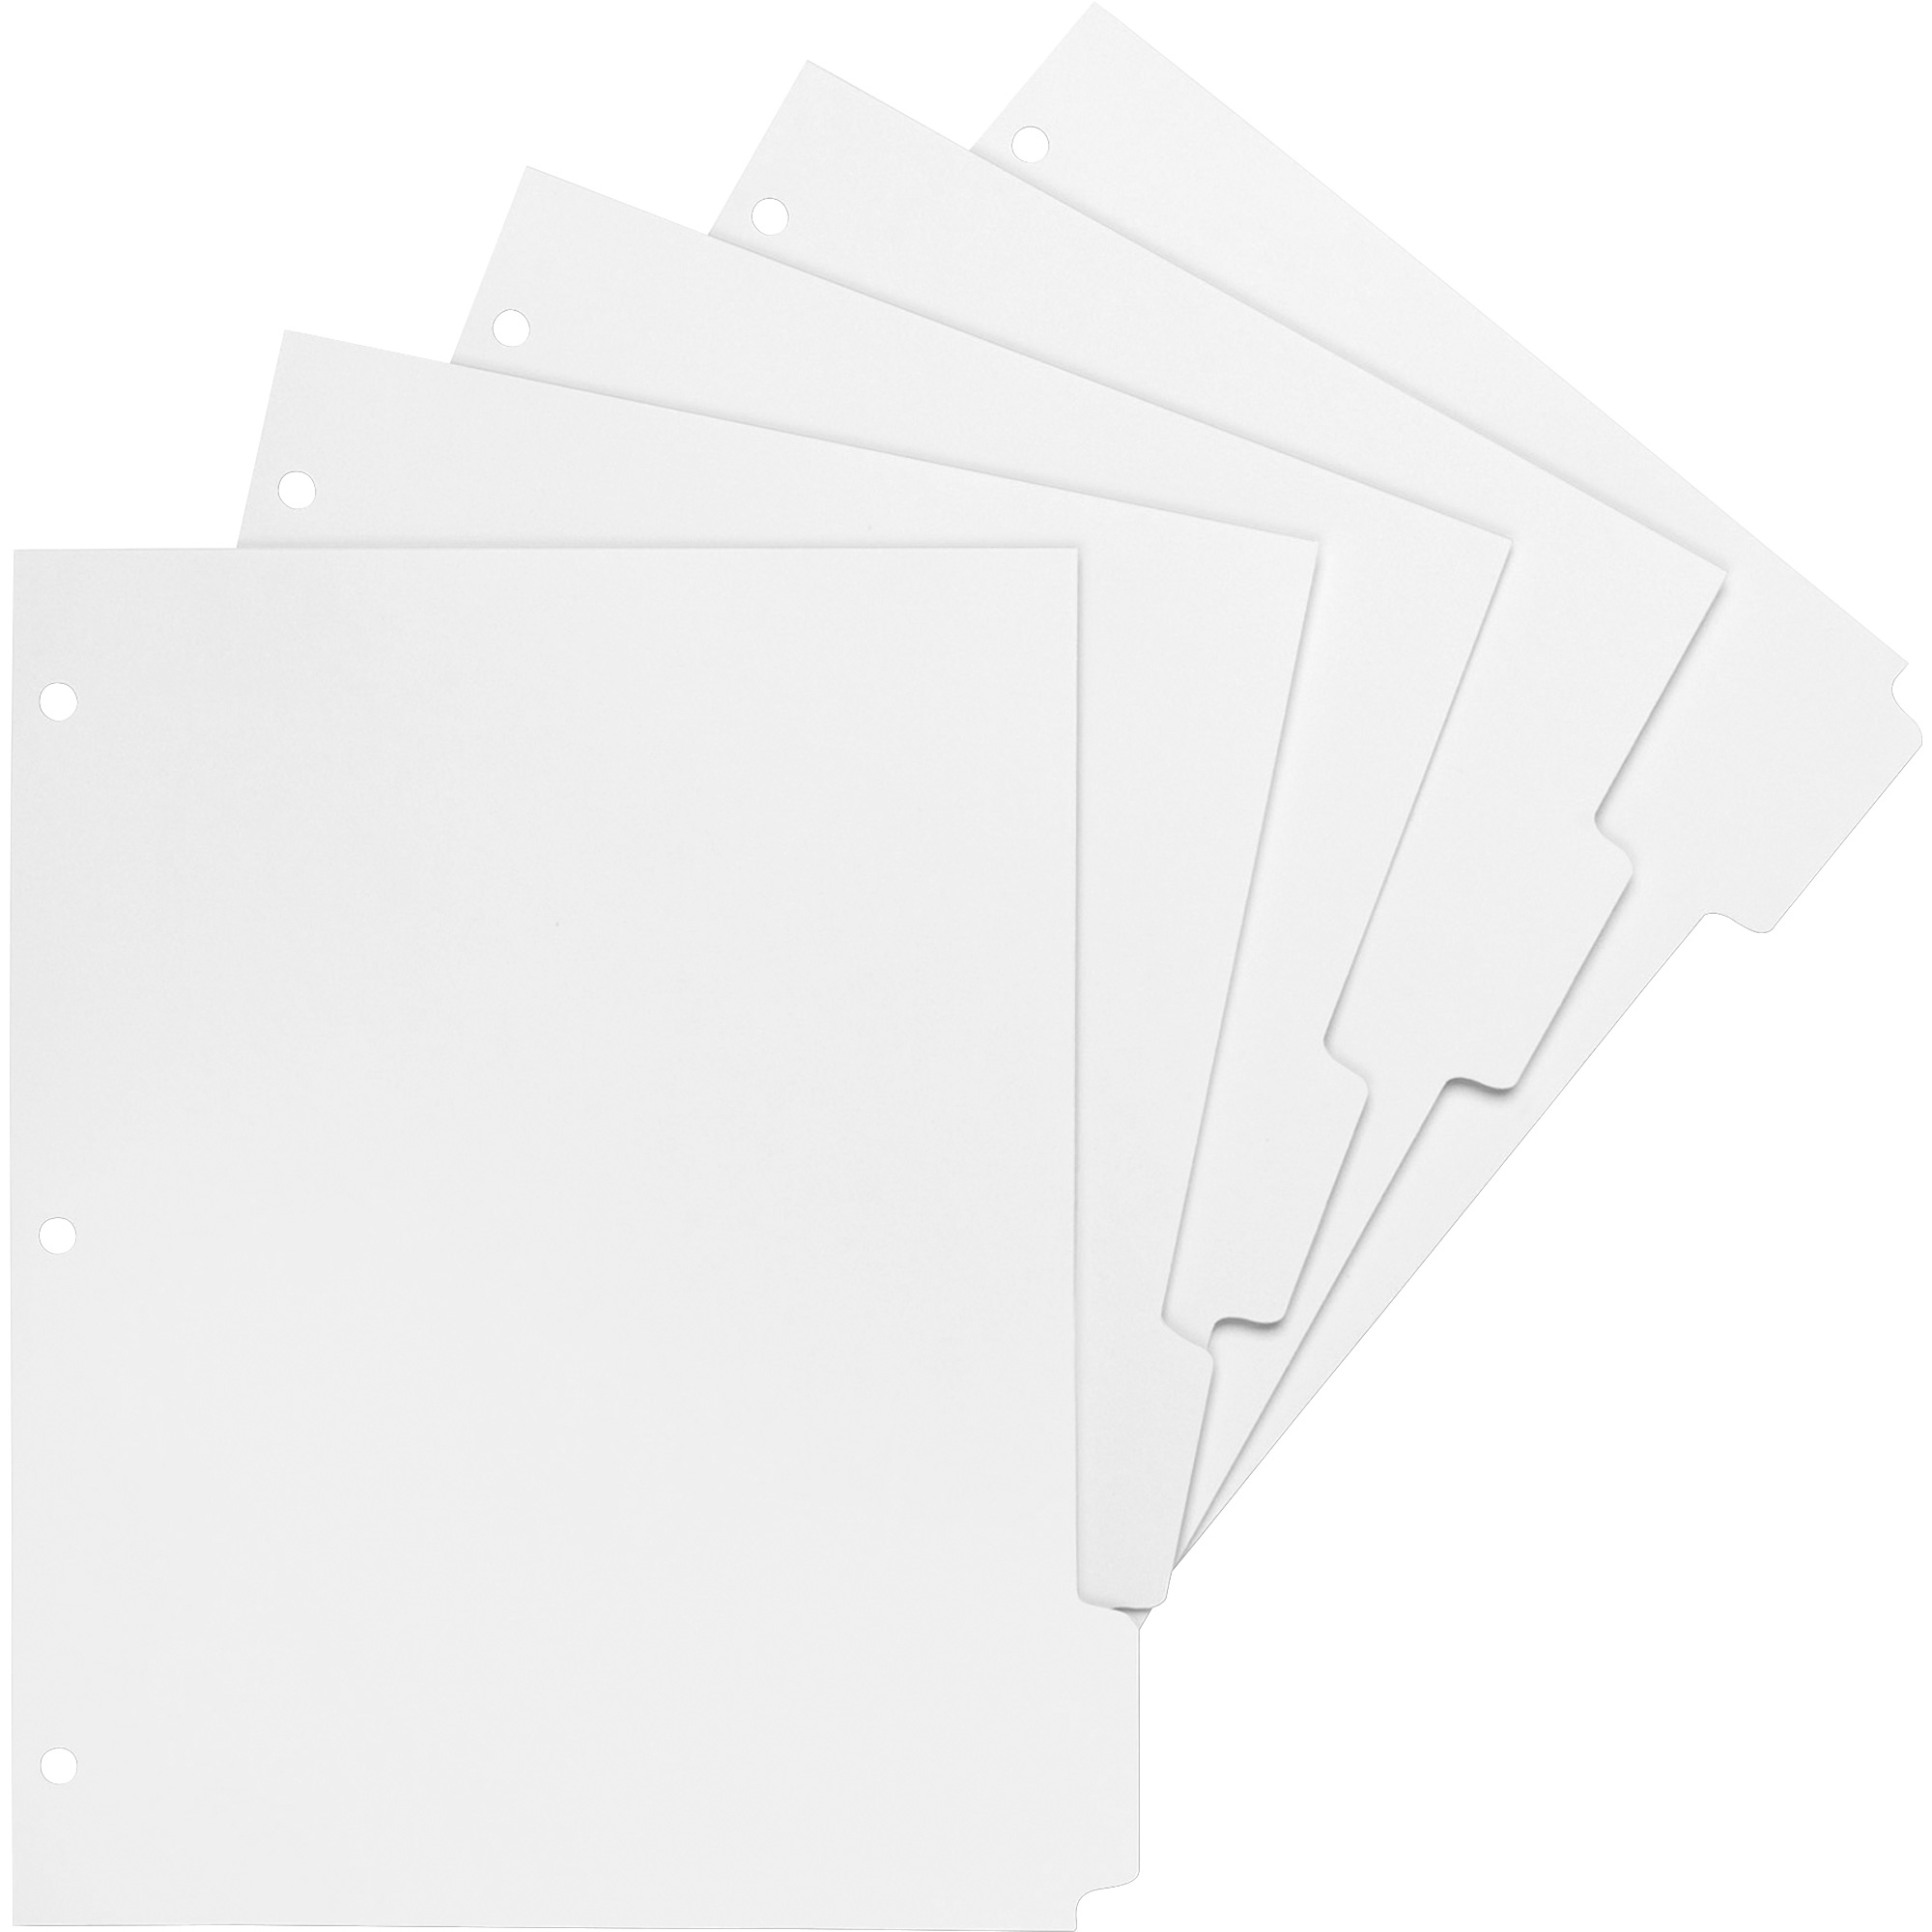 5 print on tabs 850 divider width x 11 divider length letter 3 hole punched bright white paper divider white paper tabs 50 box